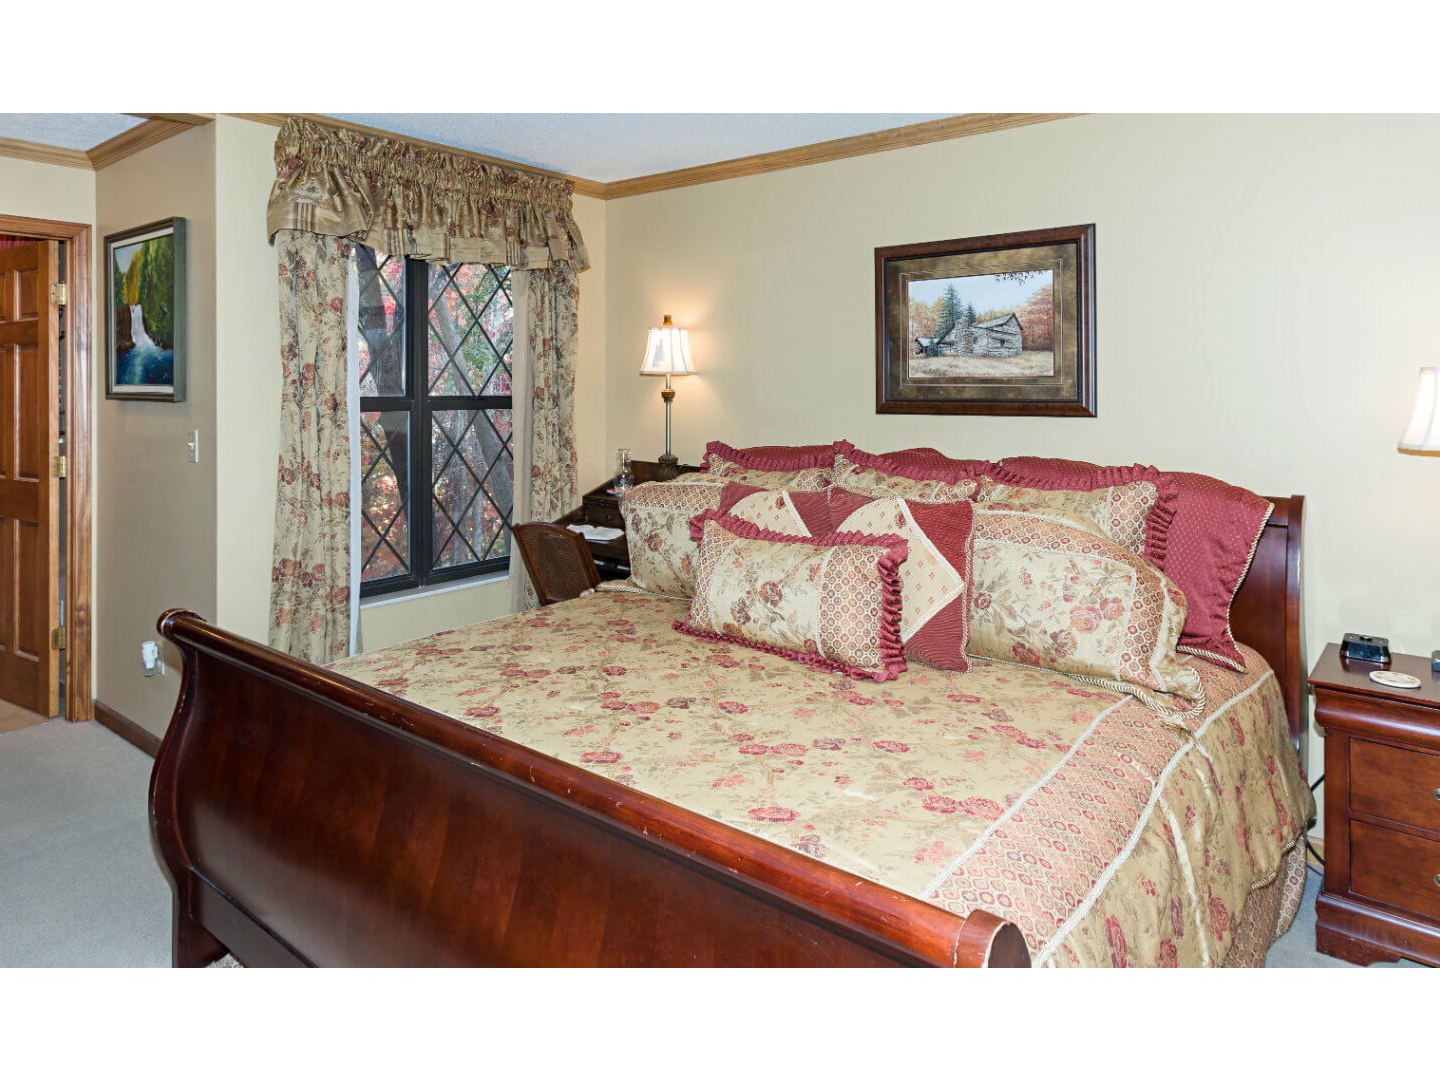 A bedroom with a large bed in a room at The Foxtrot Bed and Breakfast.